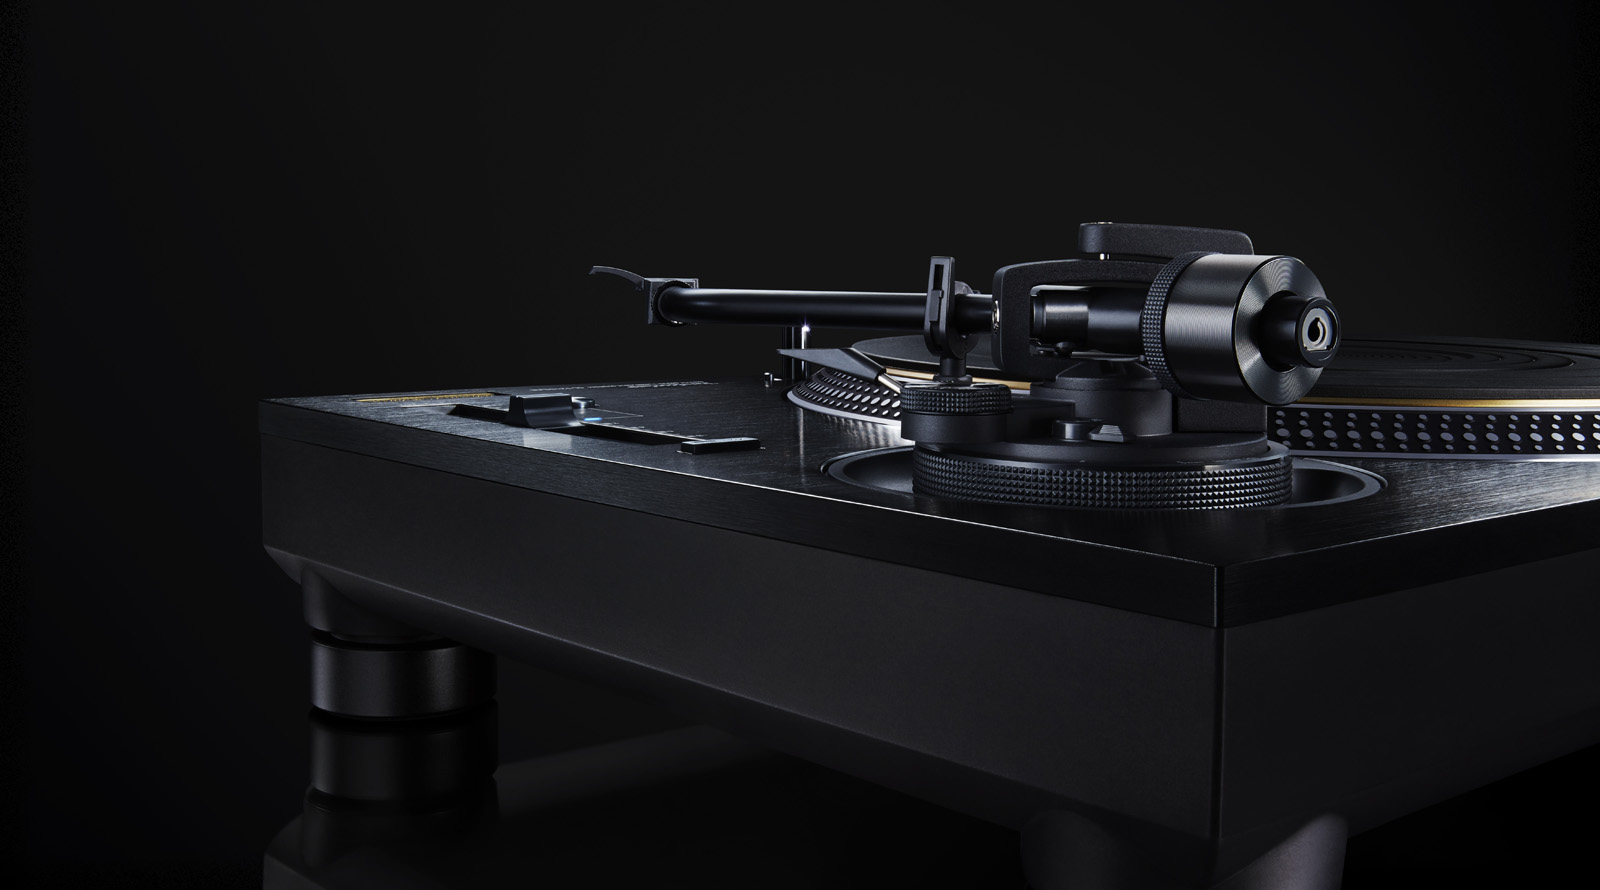 Technics Announces the SL-1210GAE Limited Edition Direct Drive Turntable to Commemorate Its 55th Anniversary